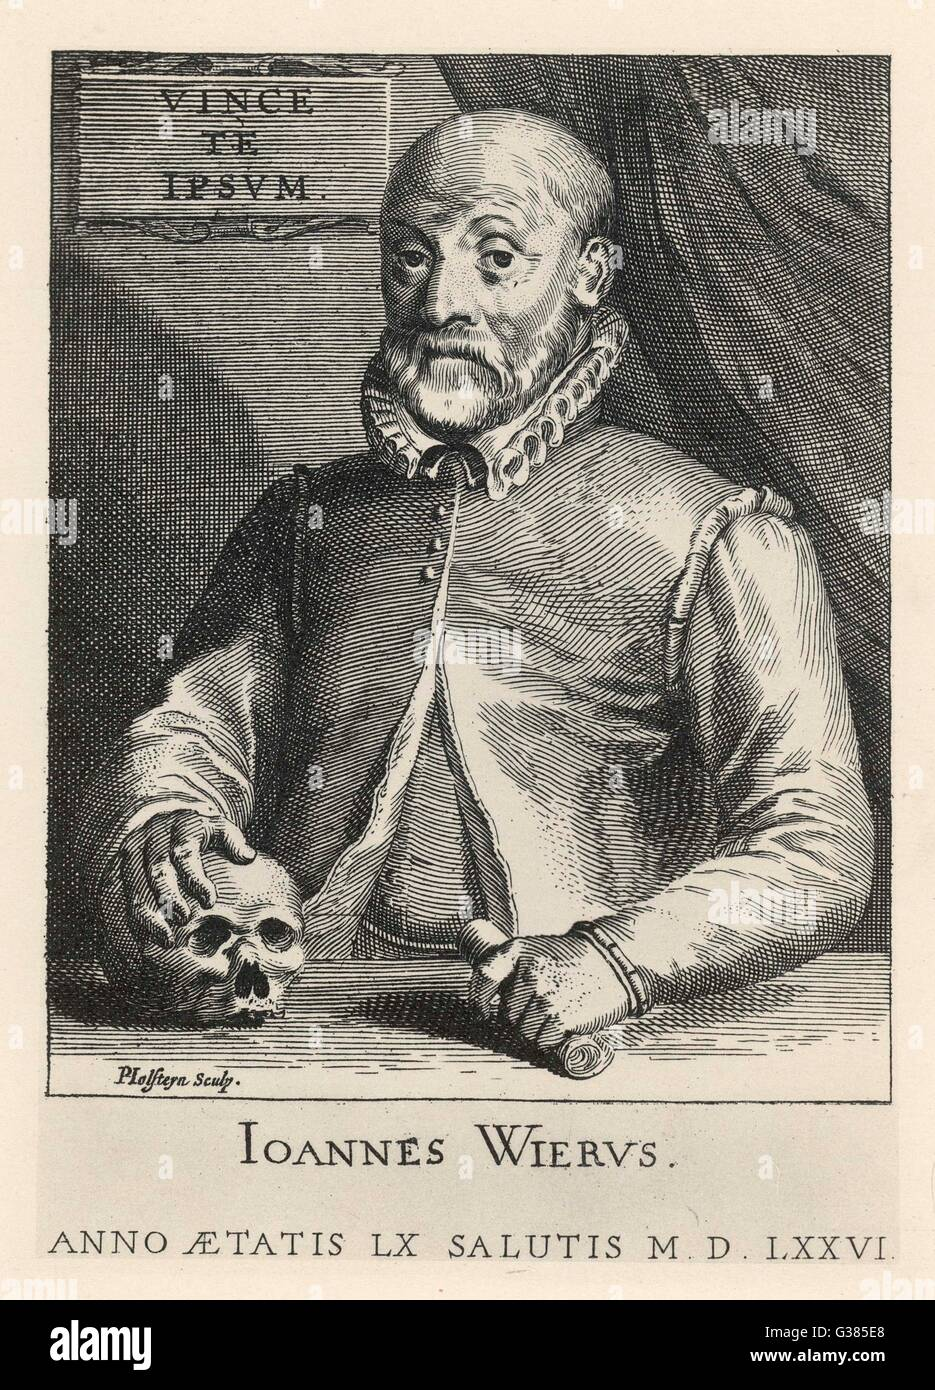 JOHANN WIER  German medical at the age of 60       Date: 1515 - 1588 - Stock Image